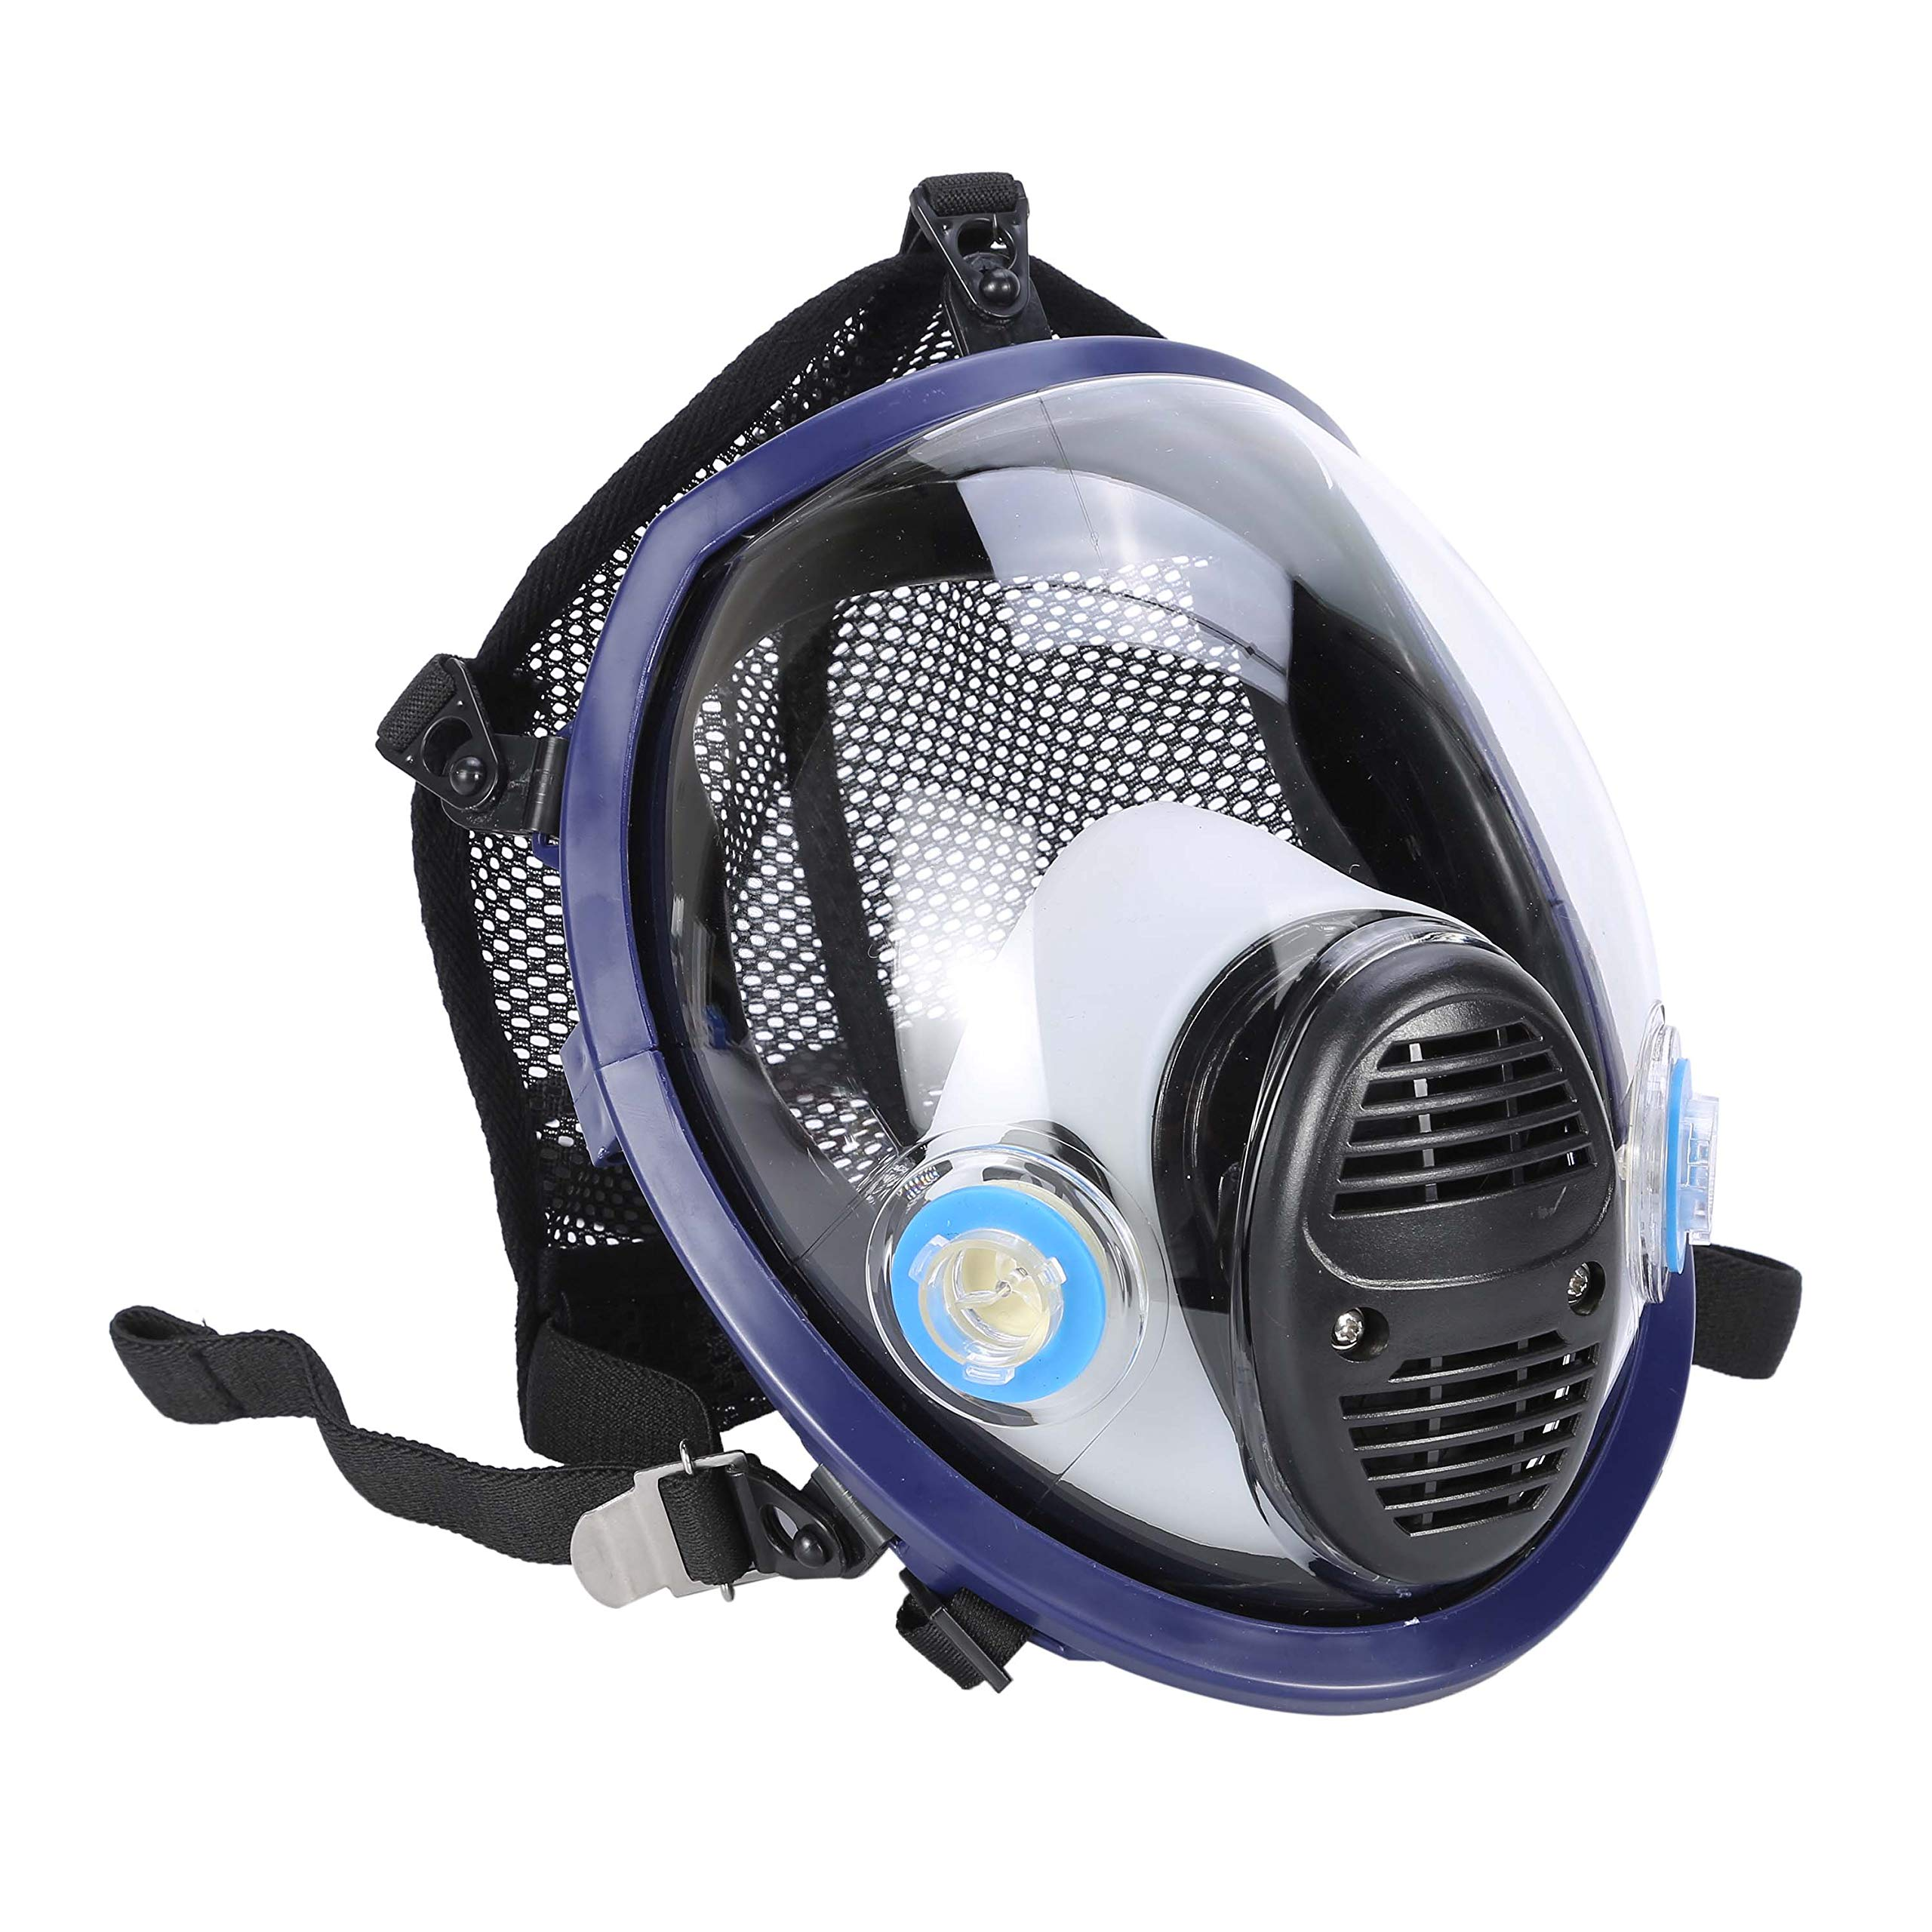 Holulo Organic Vapor Full Face Respirator With Visor Protection For Paint, chemicals, polish welding protection by Holulo (Image #3)